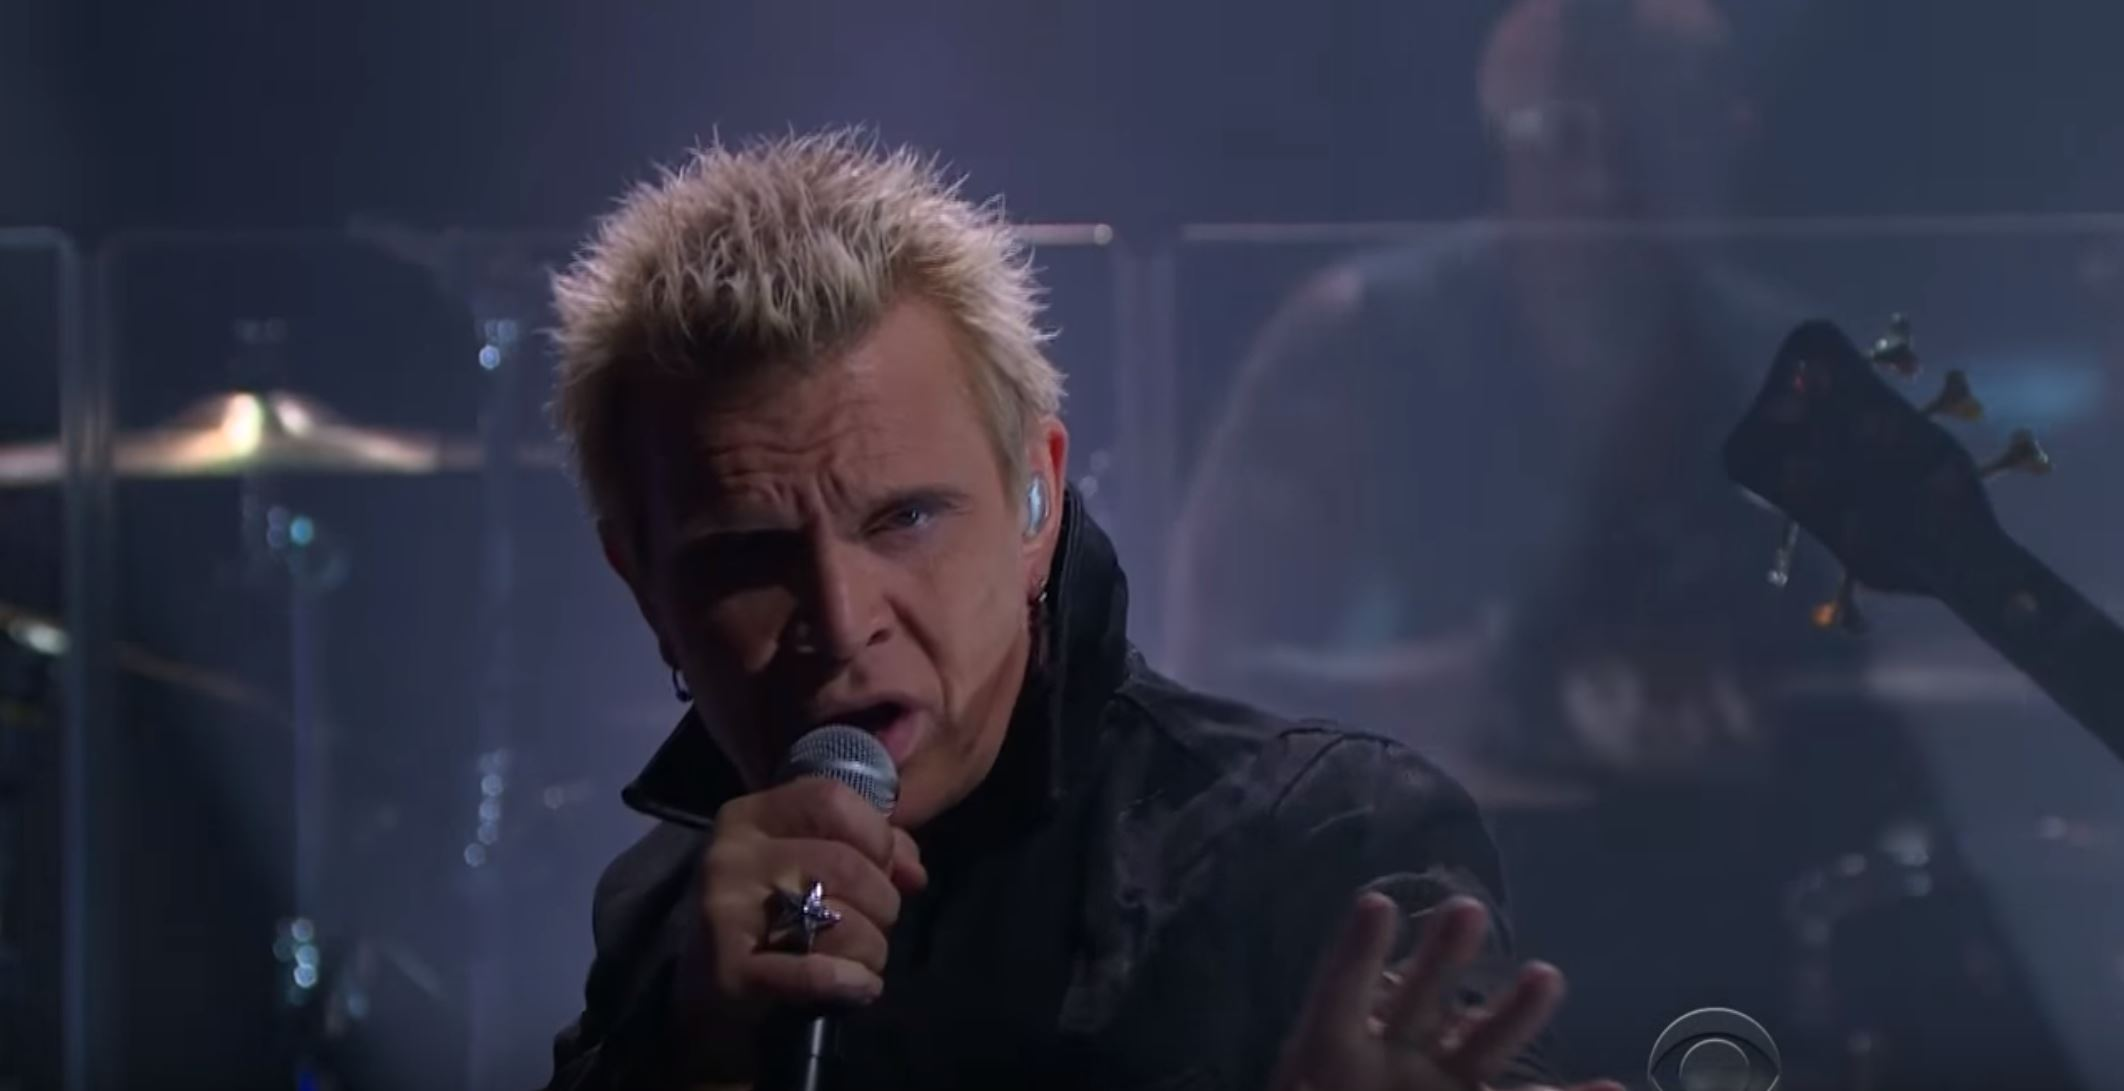 Billy Idol Makes his Return On James Corden Show With White Wedding